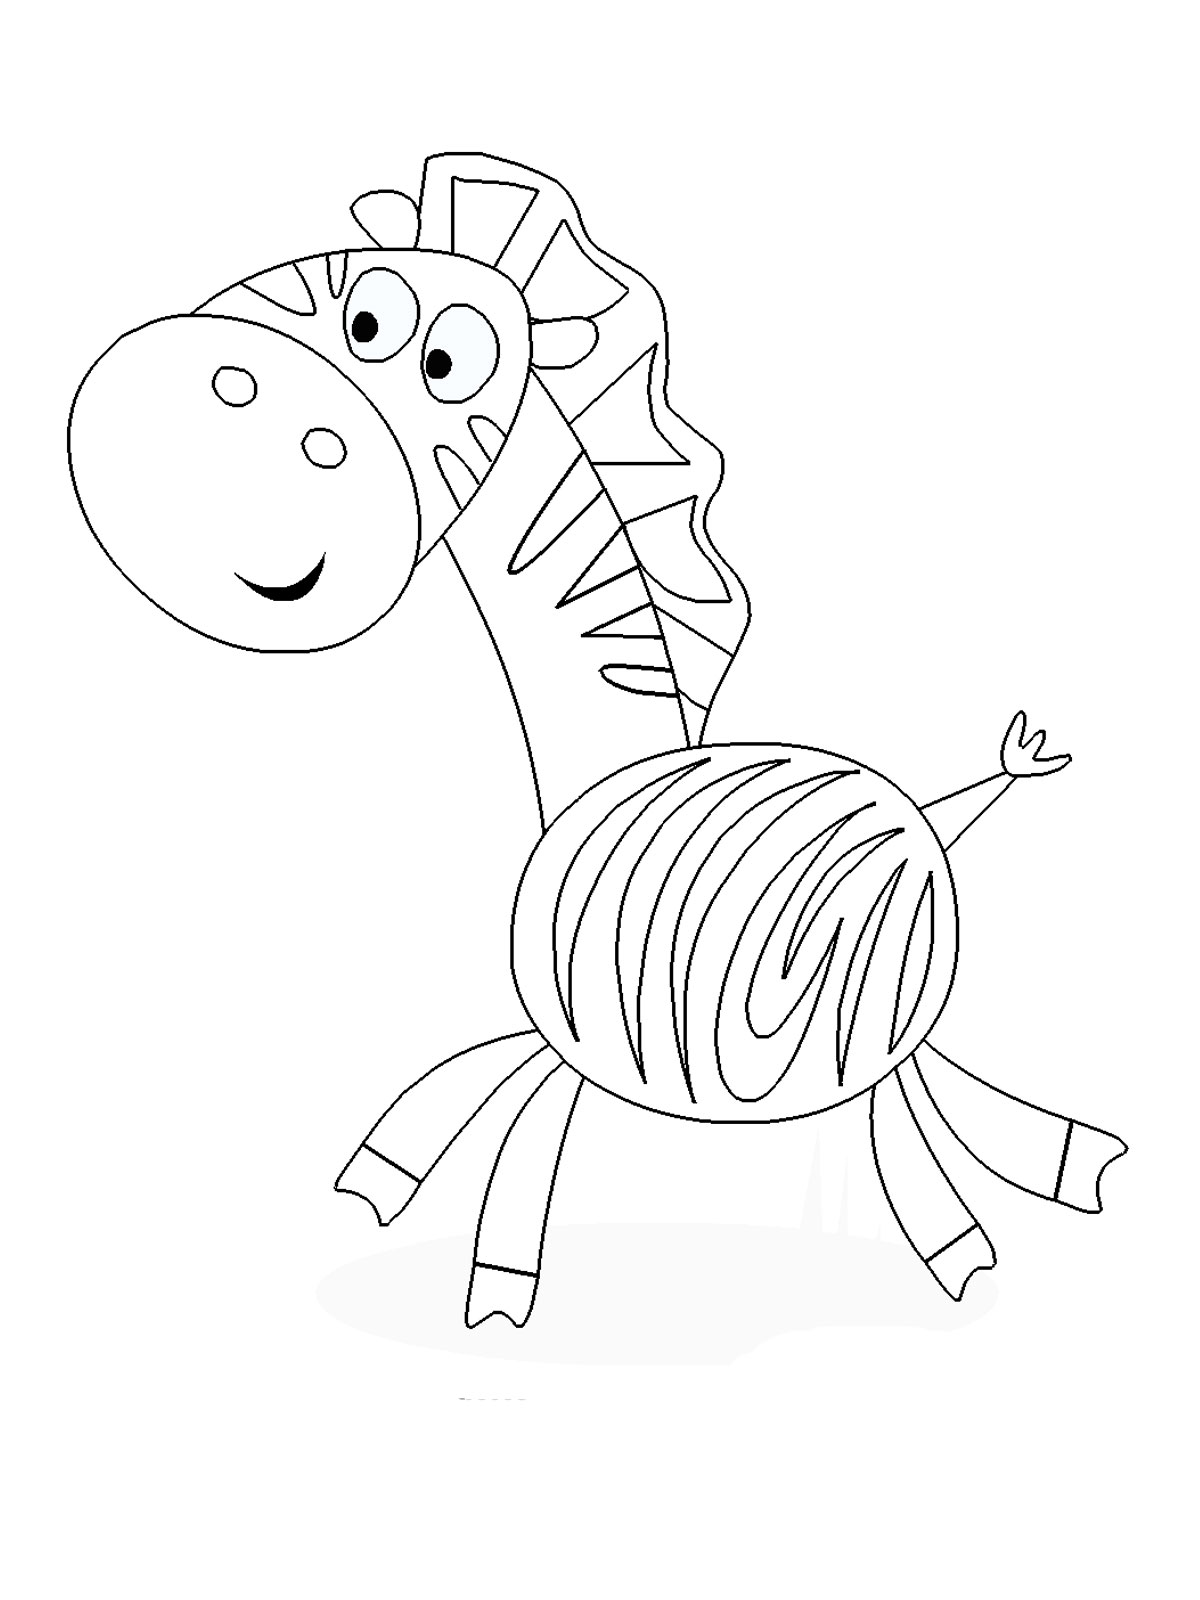 coloring templates for kids caillou coloring pages best coloring pages for kids for kids coloring templates